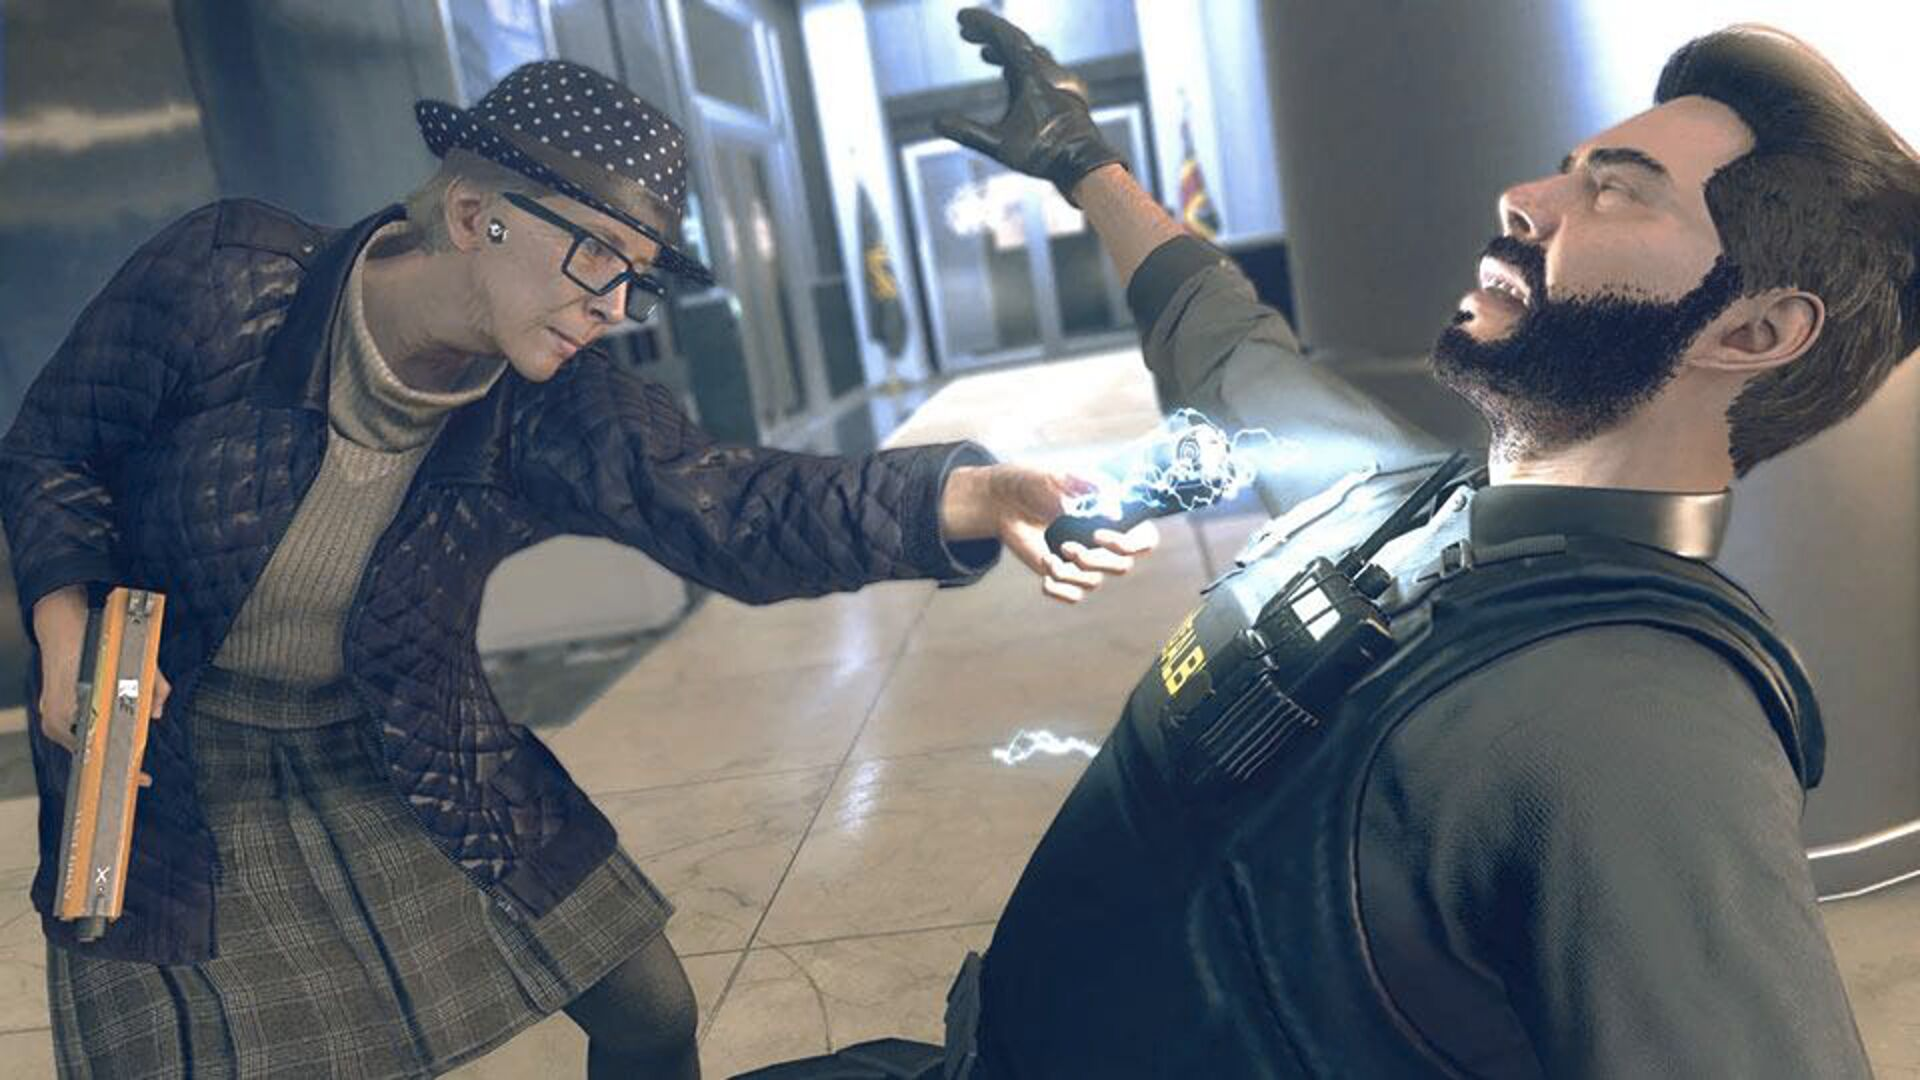 Watch Dogs Legion's online modes are available now